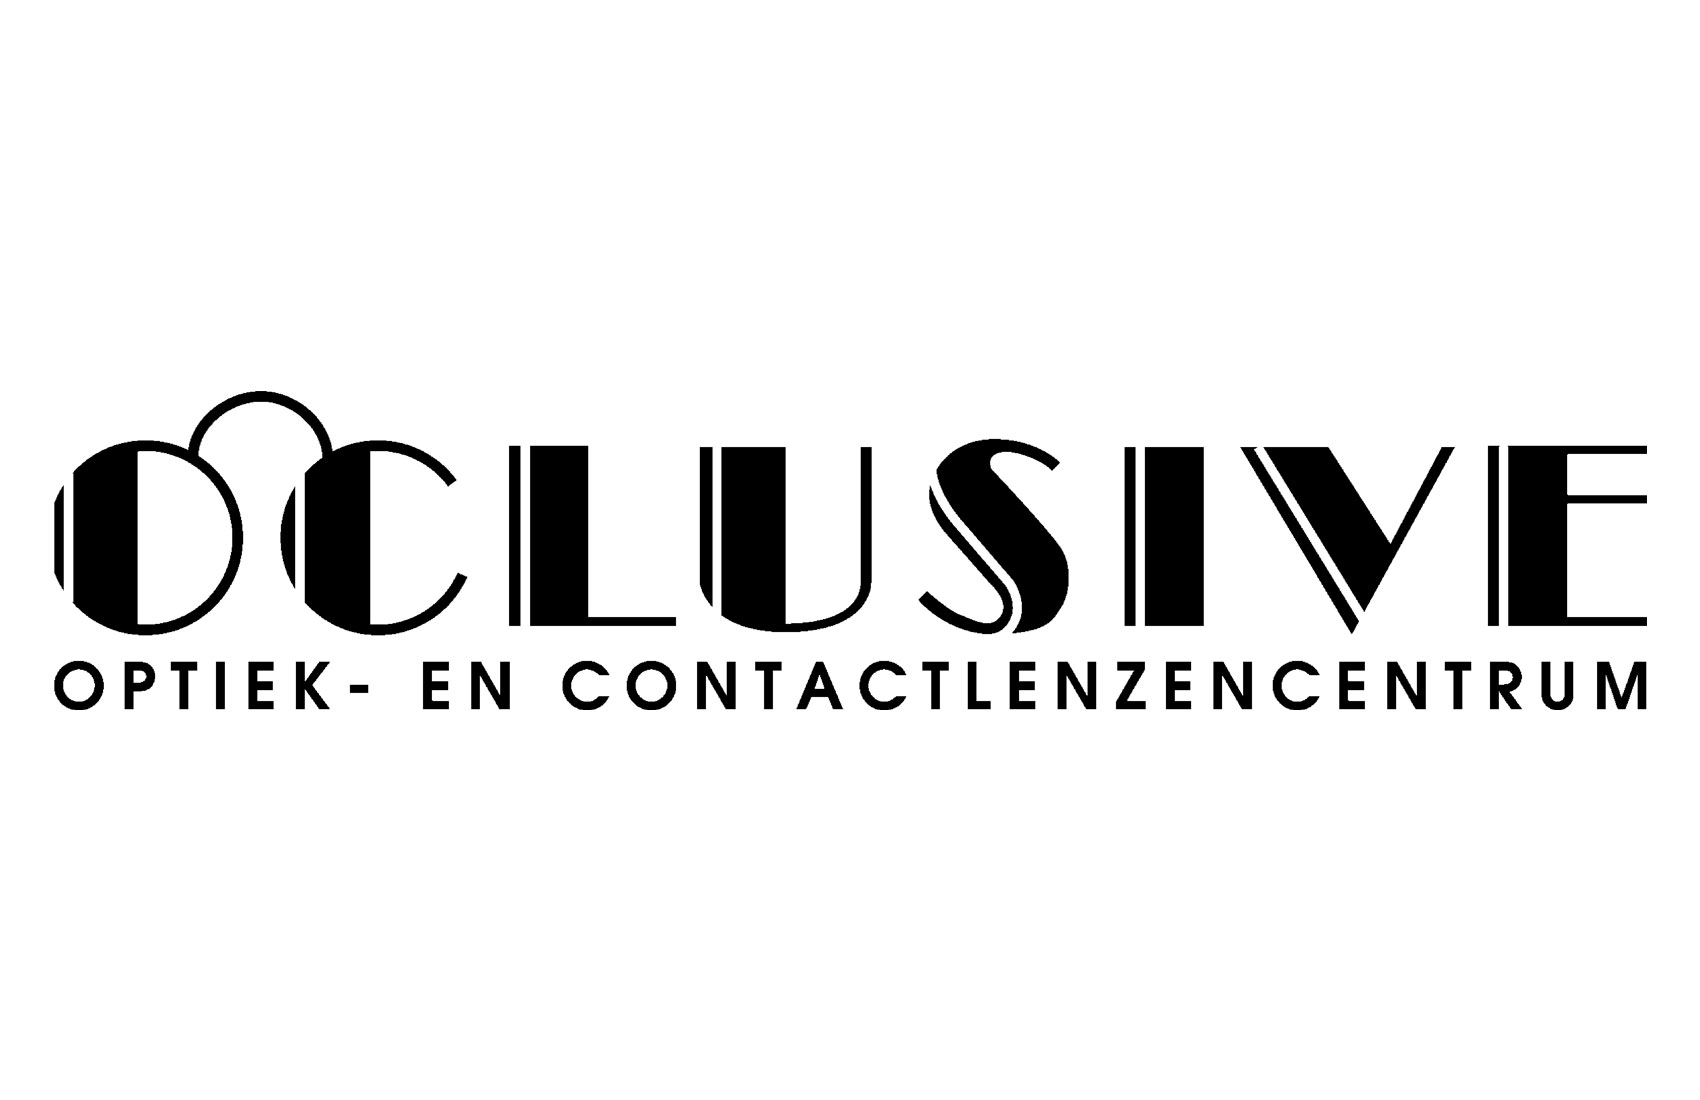 Oclusive - optiek en contactlenzencentrum